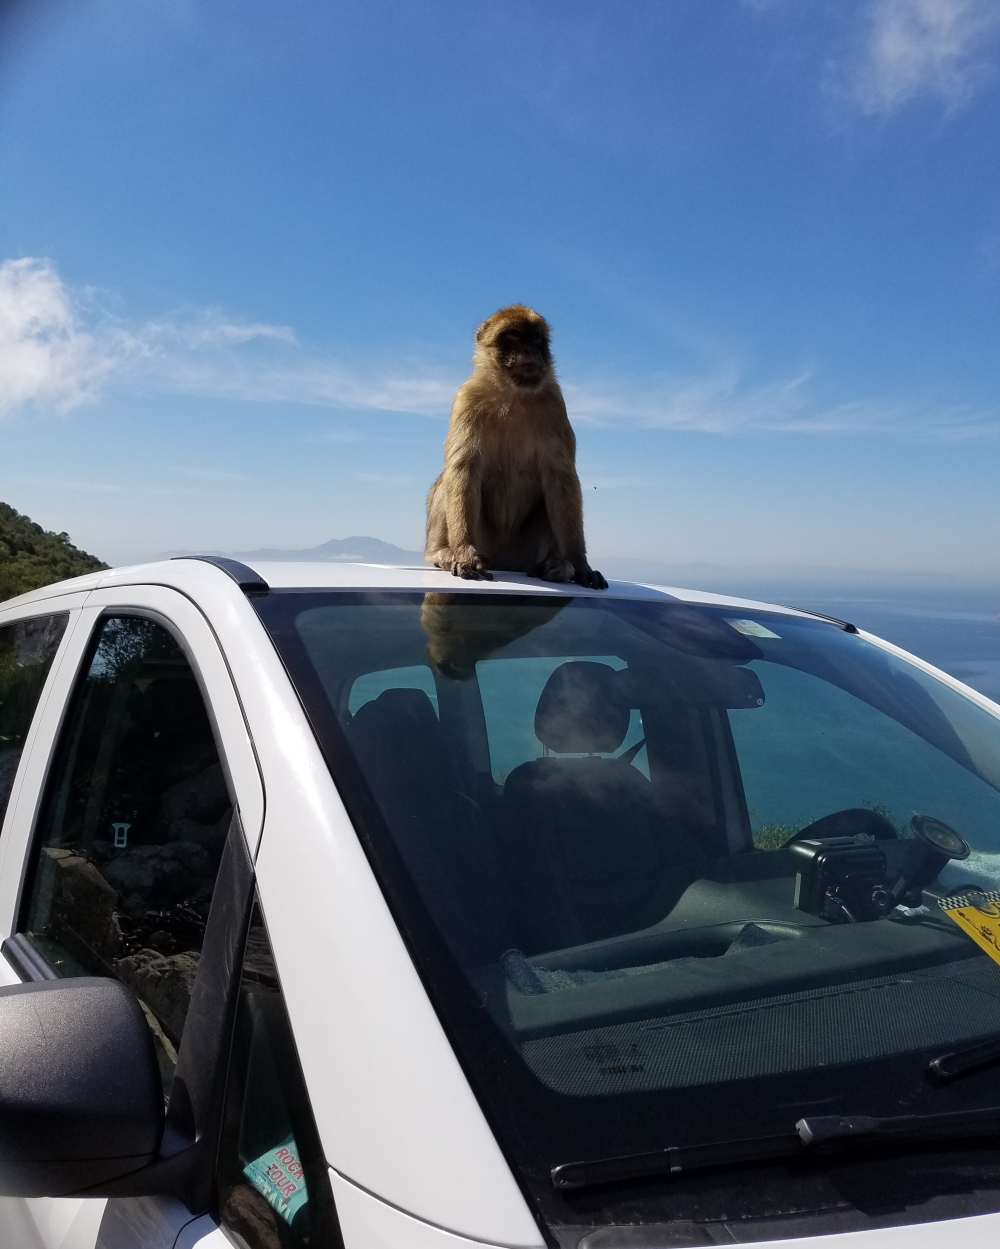 Gibraltar Barbary Macaque On Van